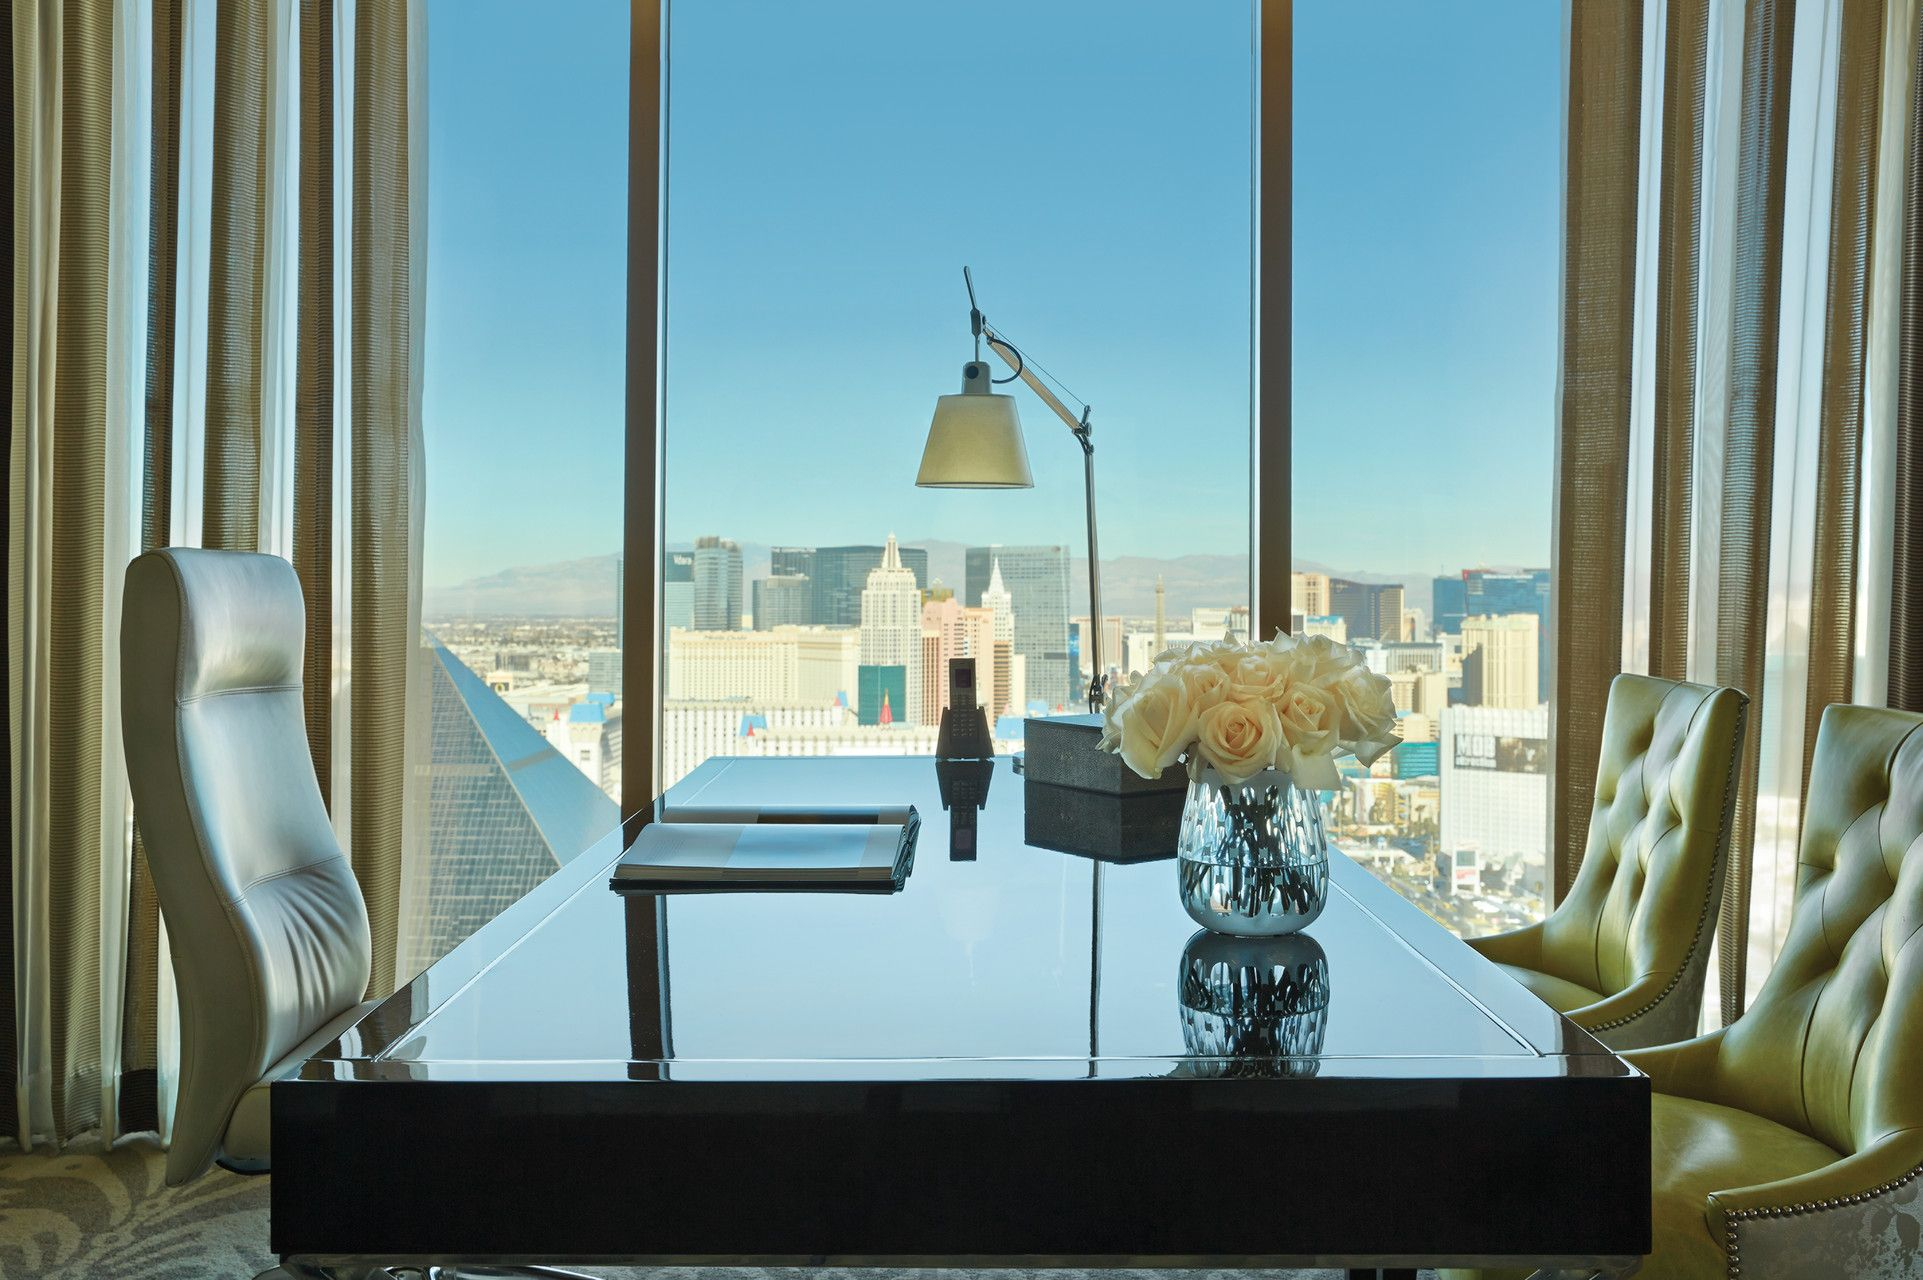 Presidential Strip-View Suite Desk and Chairs | The Suite Life ...